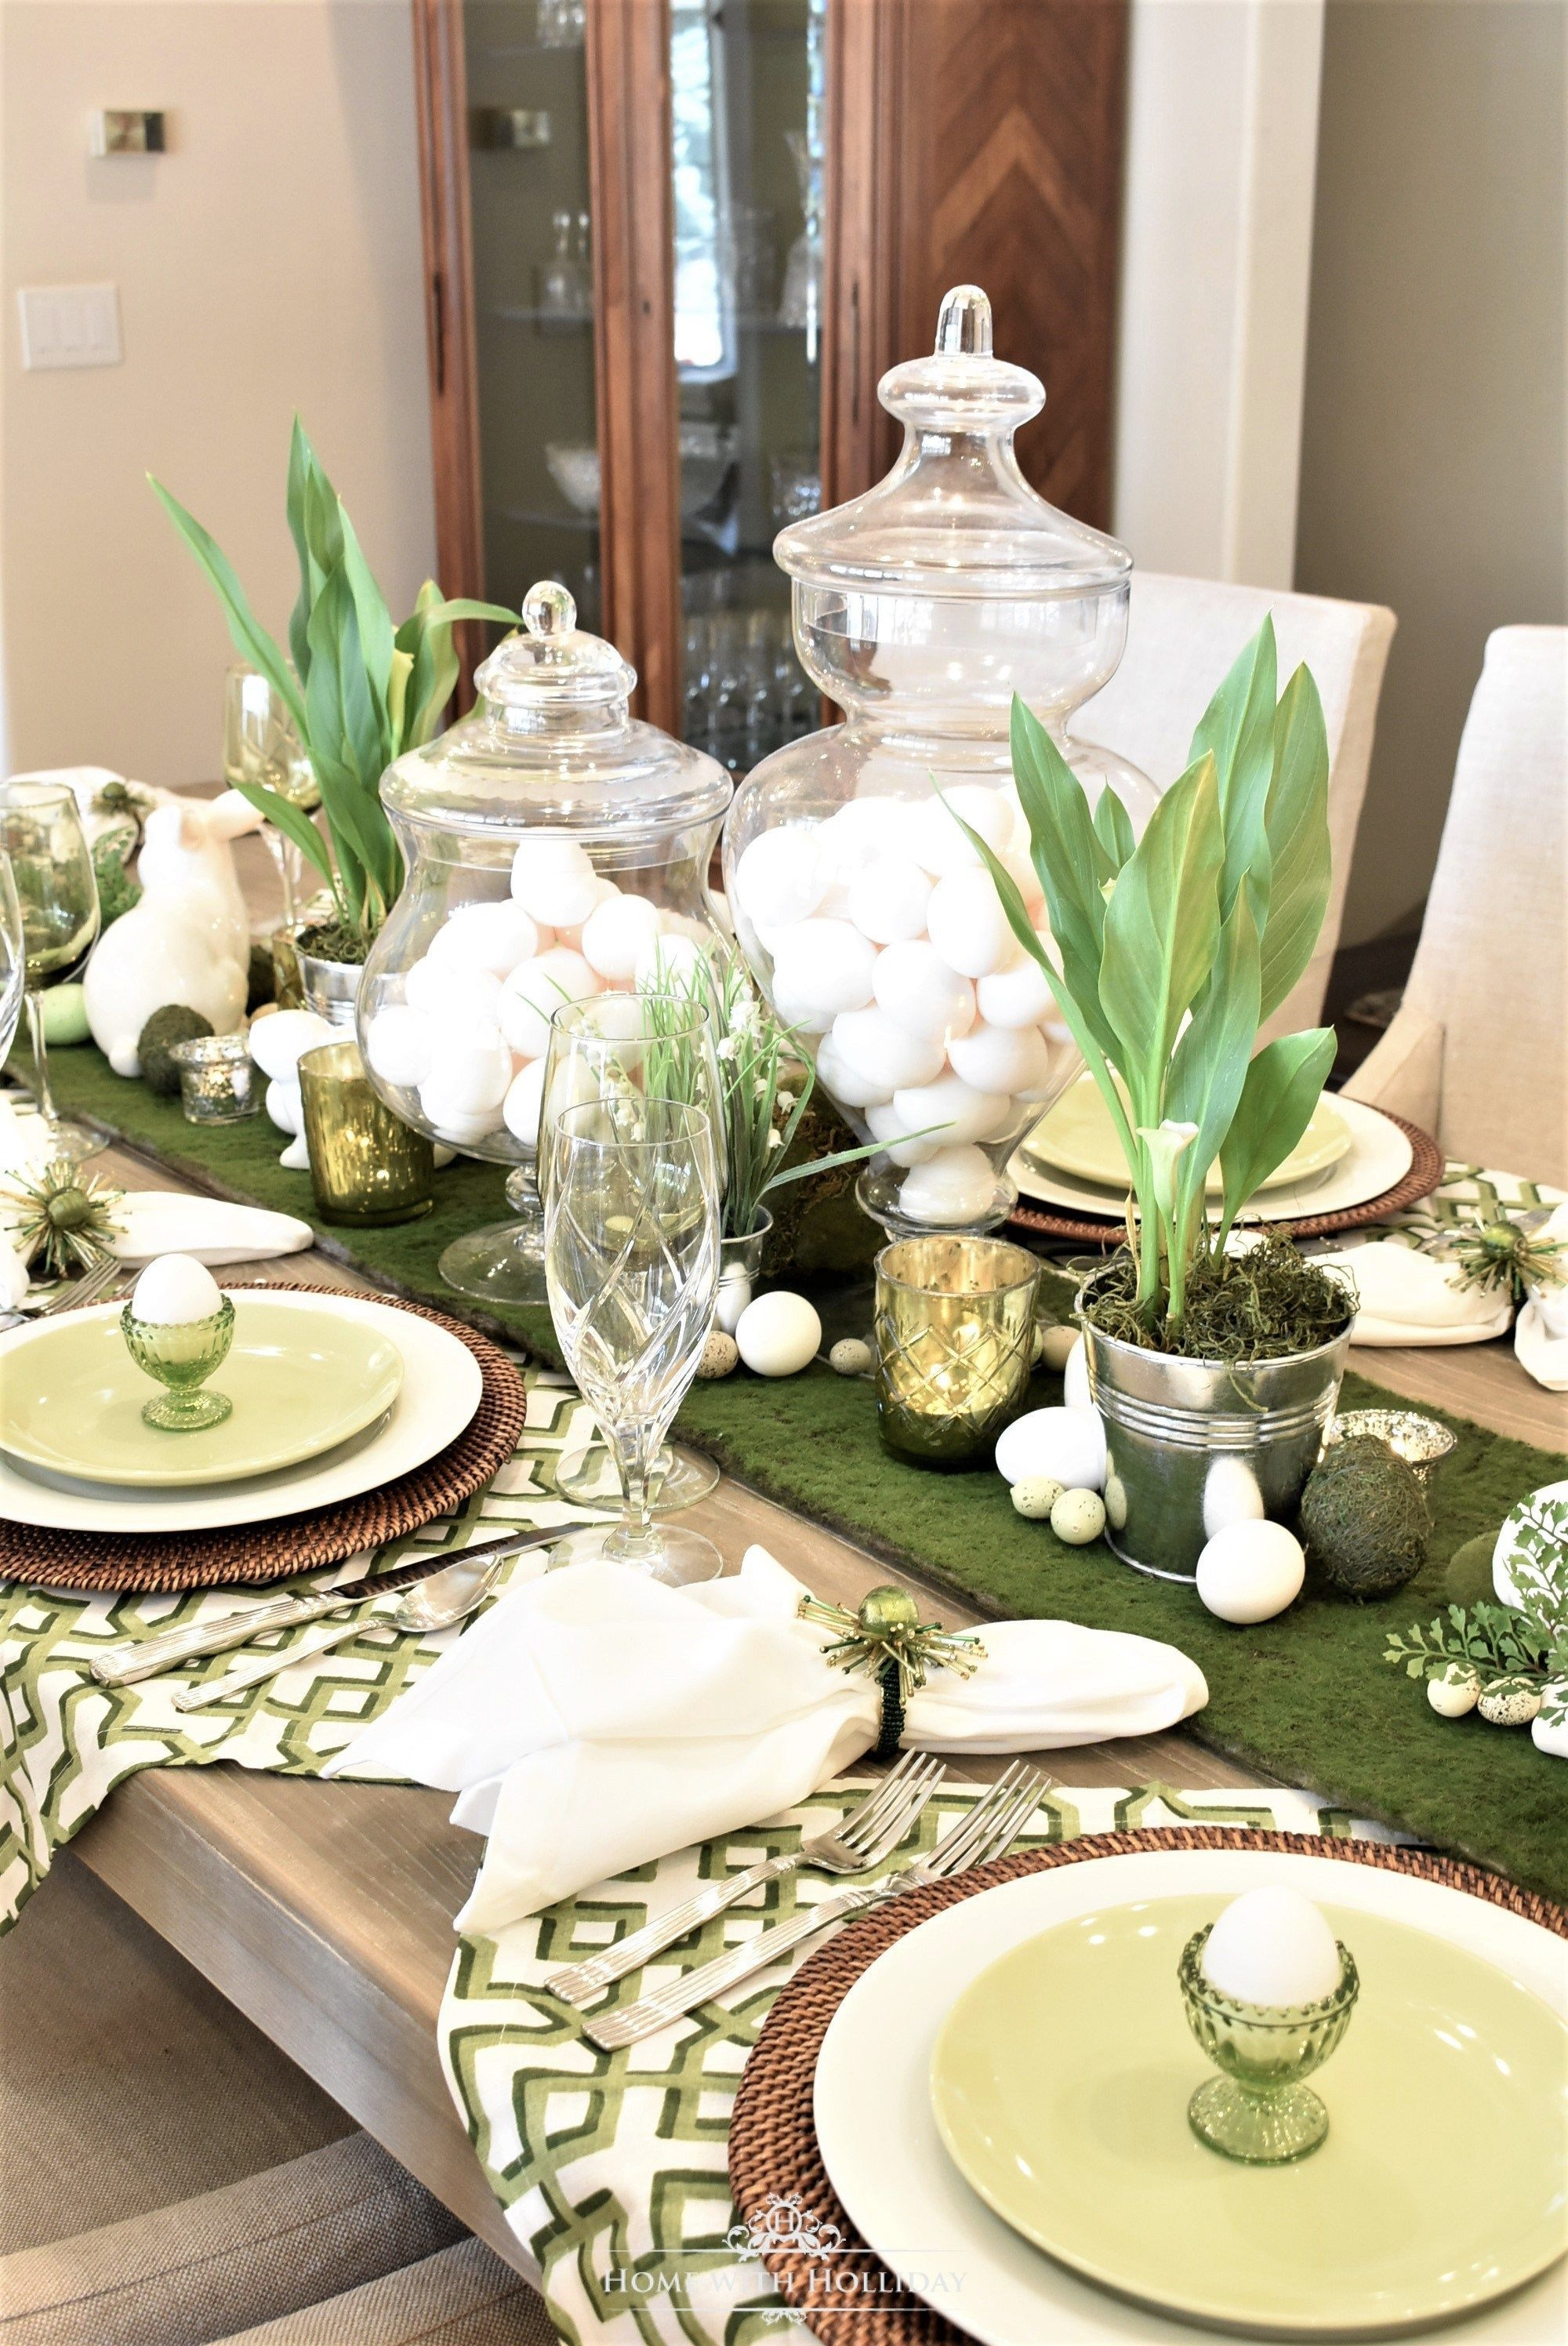 Wonderful Easter Home Design Ideas That You Have To Copy 13